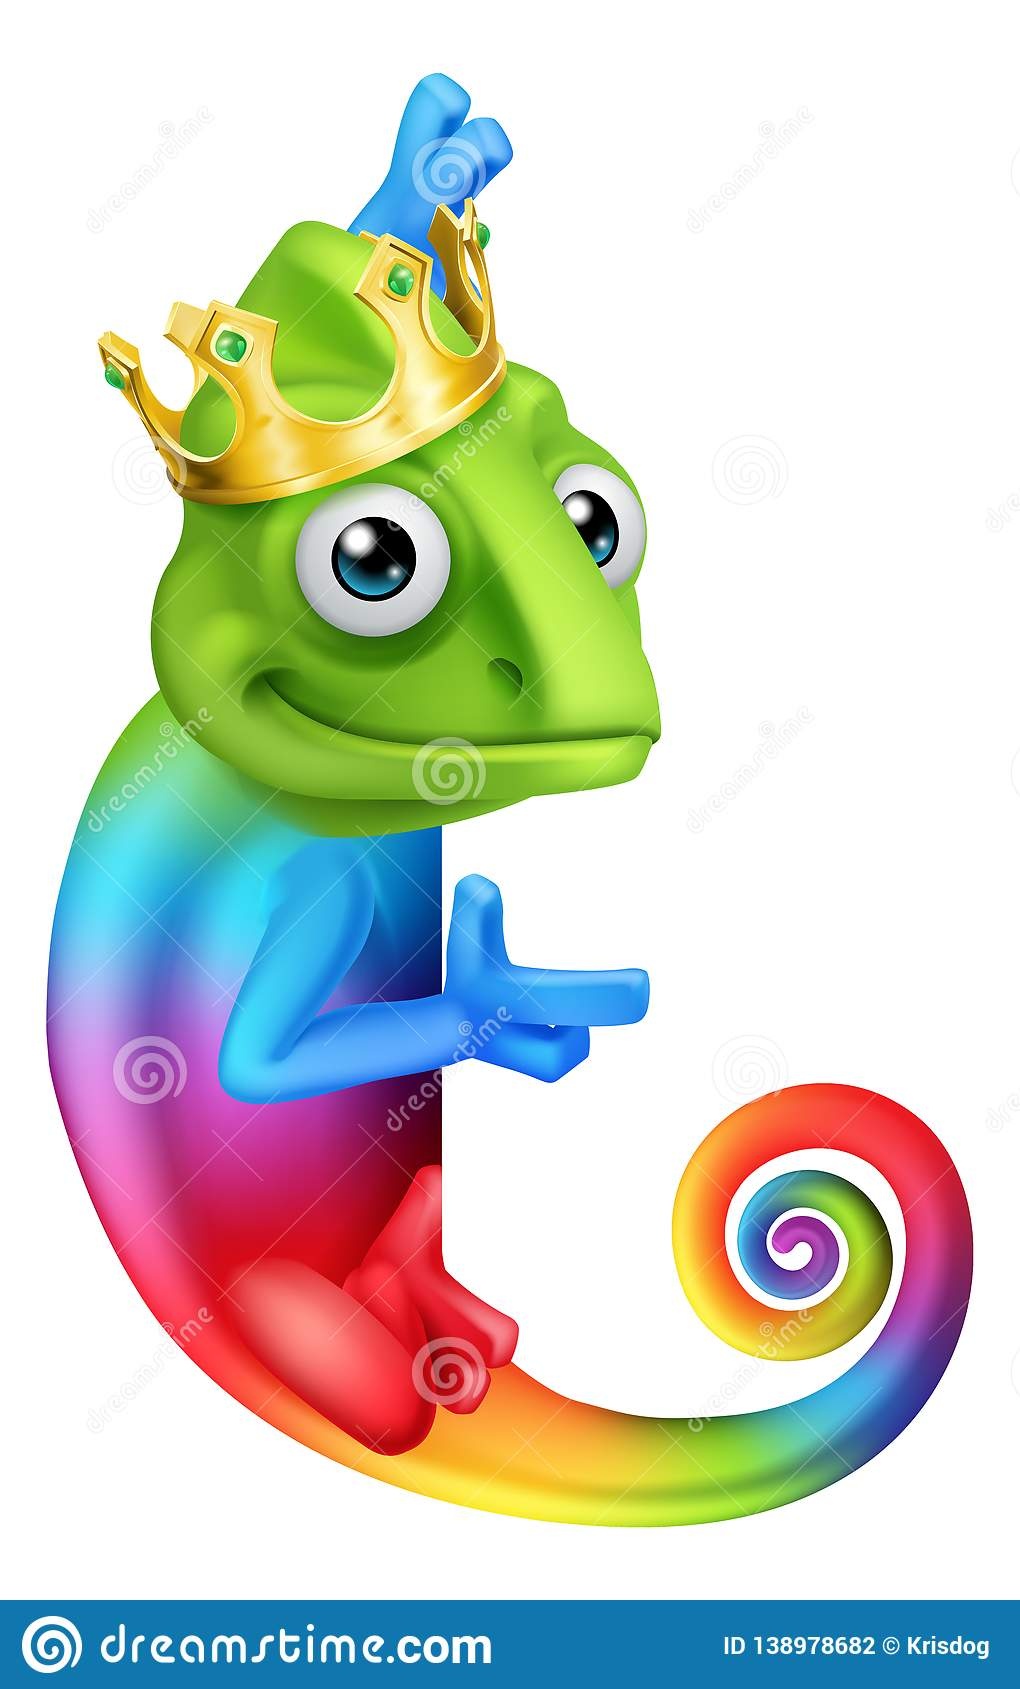 Chameleon King Crown Cartoon Lizard Character Stock Vector Illustration Of Drawing Color 138978682 You can edit any of drawings via our online image editor before downloading. https www dreamstime com chameleon king crown cartoon lizard character multicolored rainbow wearing illustration image138978682